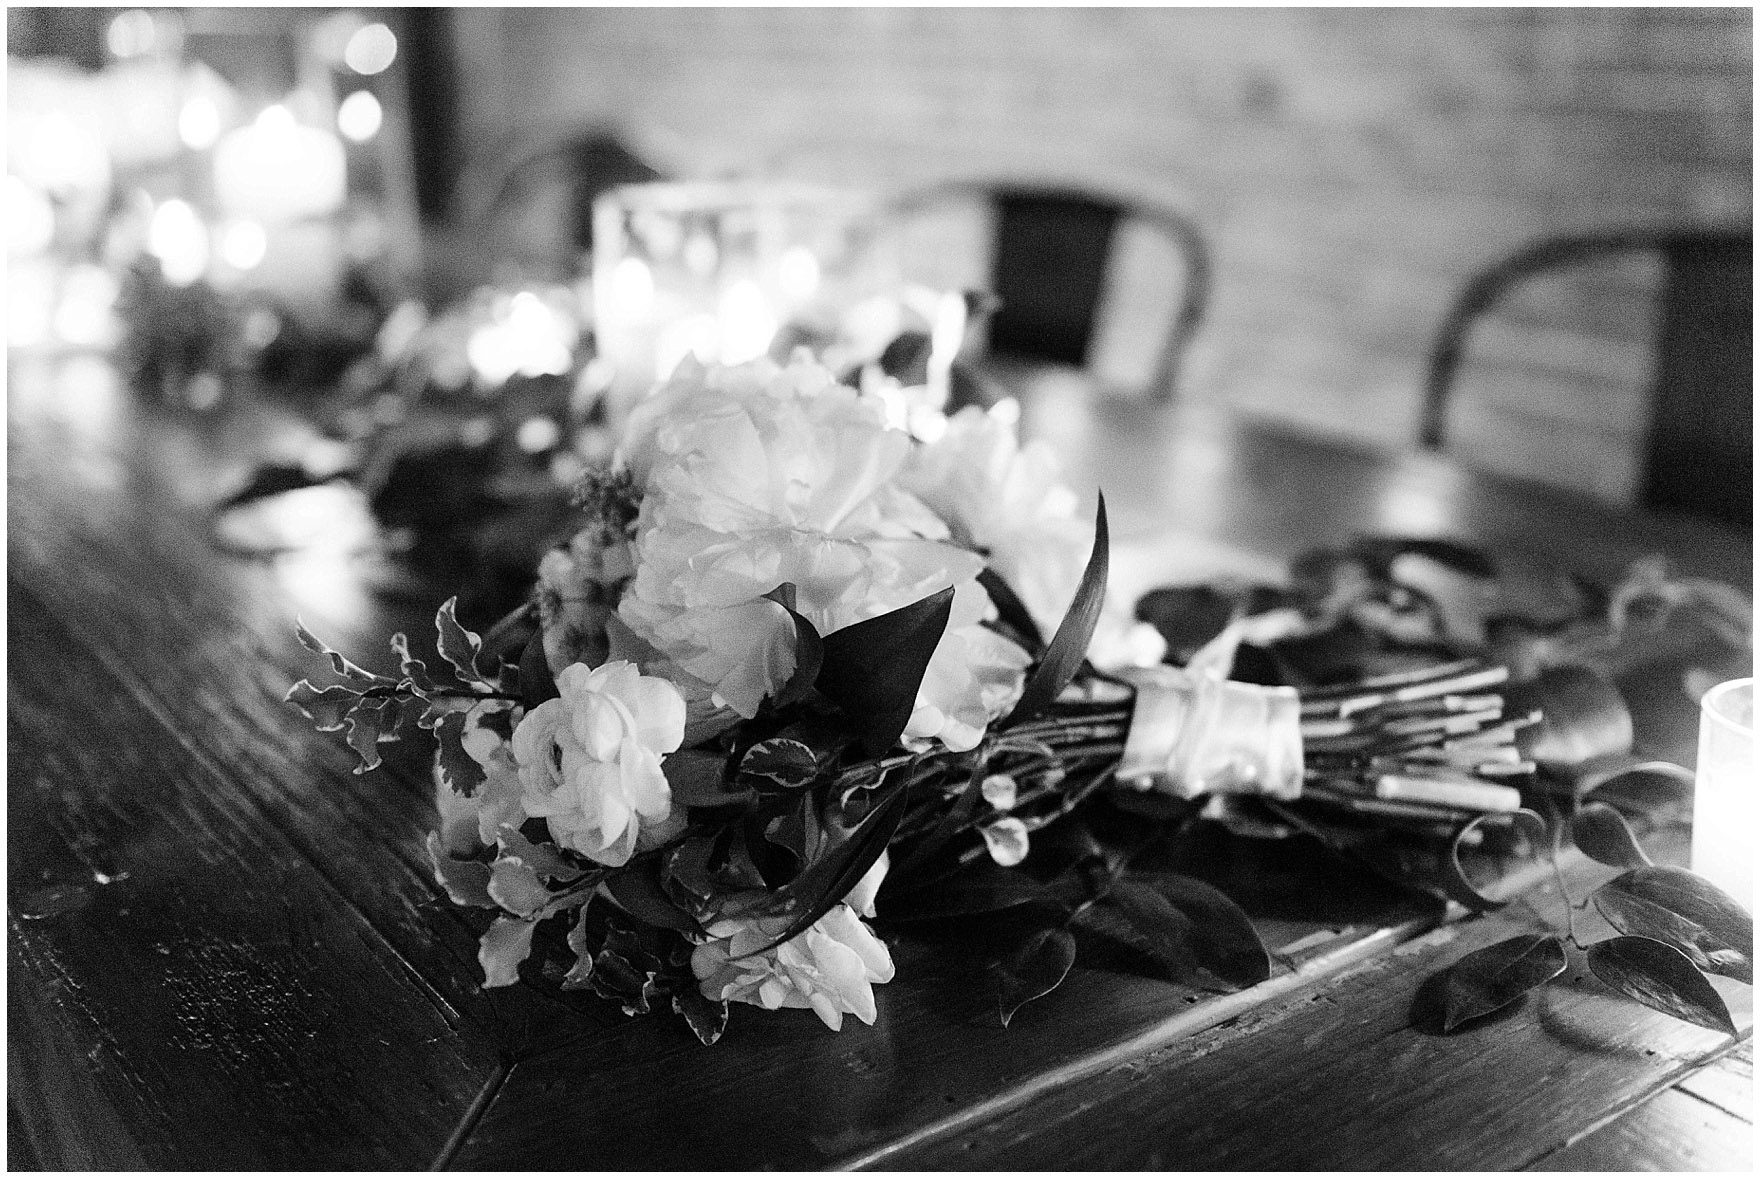 A bridal bouquet lays on a wooden table at an Ovation Chicago wedding.